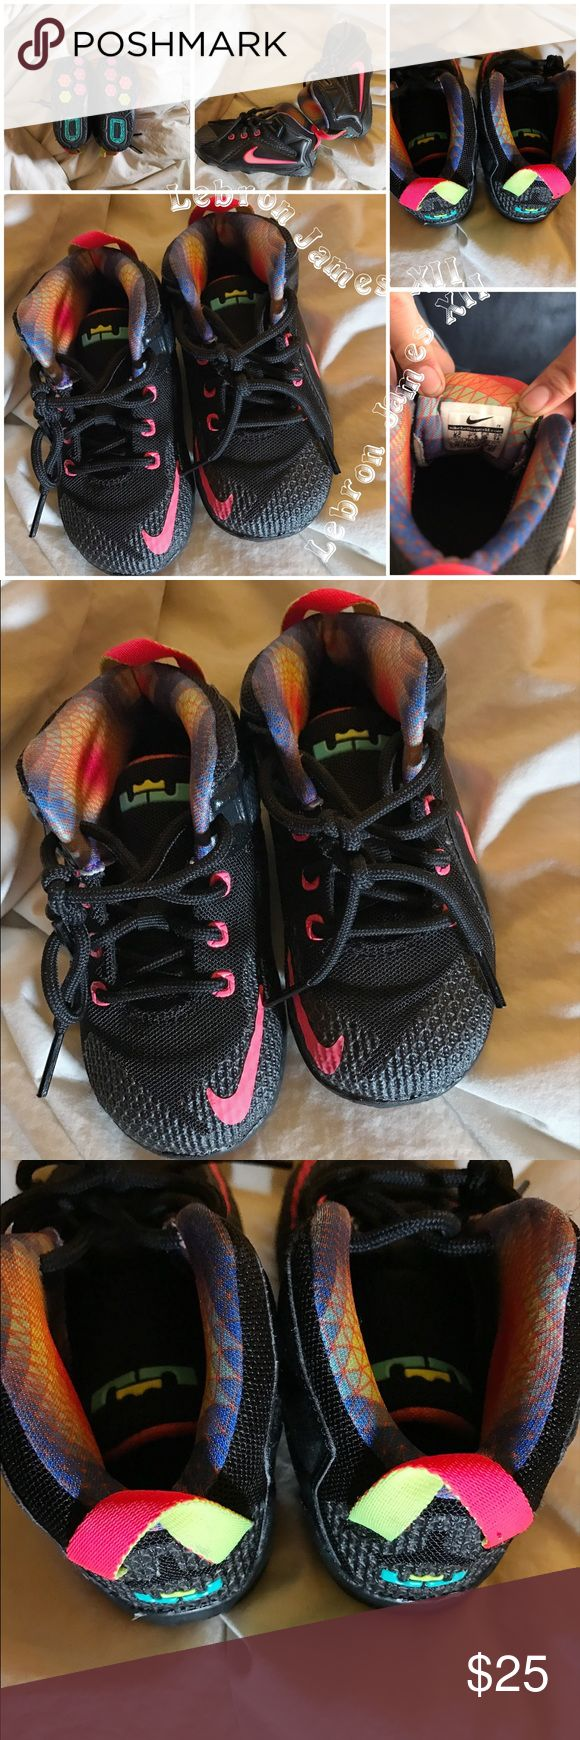 Lebron James XII Preowned shoes, good condition.  I seen them sell for preowned 29 on an outside vendor.  There is more Colors than black seen in the pictures.  Happy poshing. lebron james Shoes Sneakers